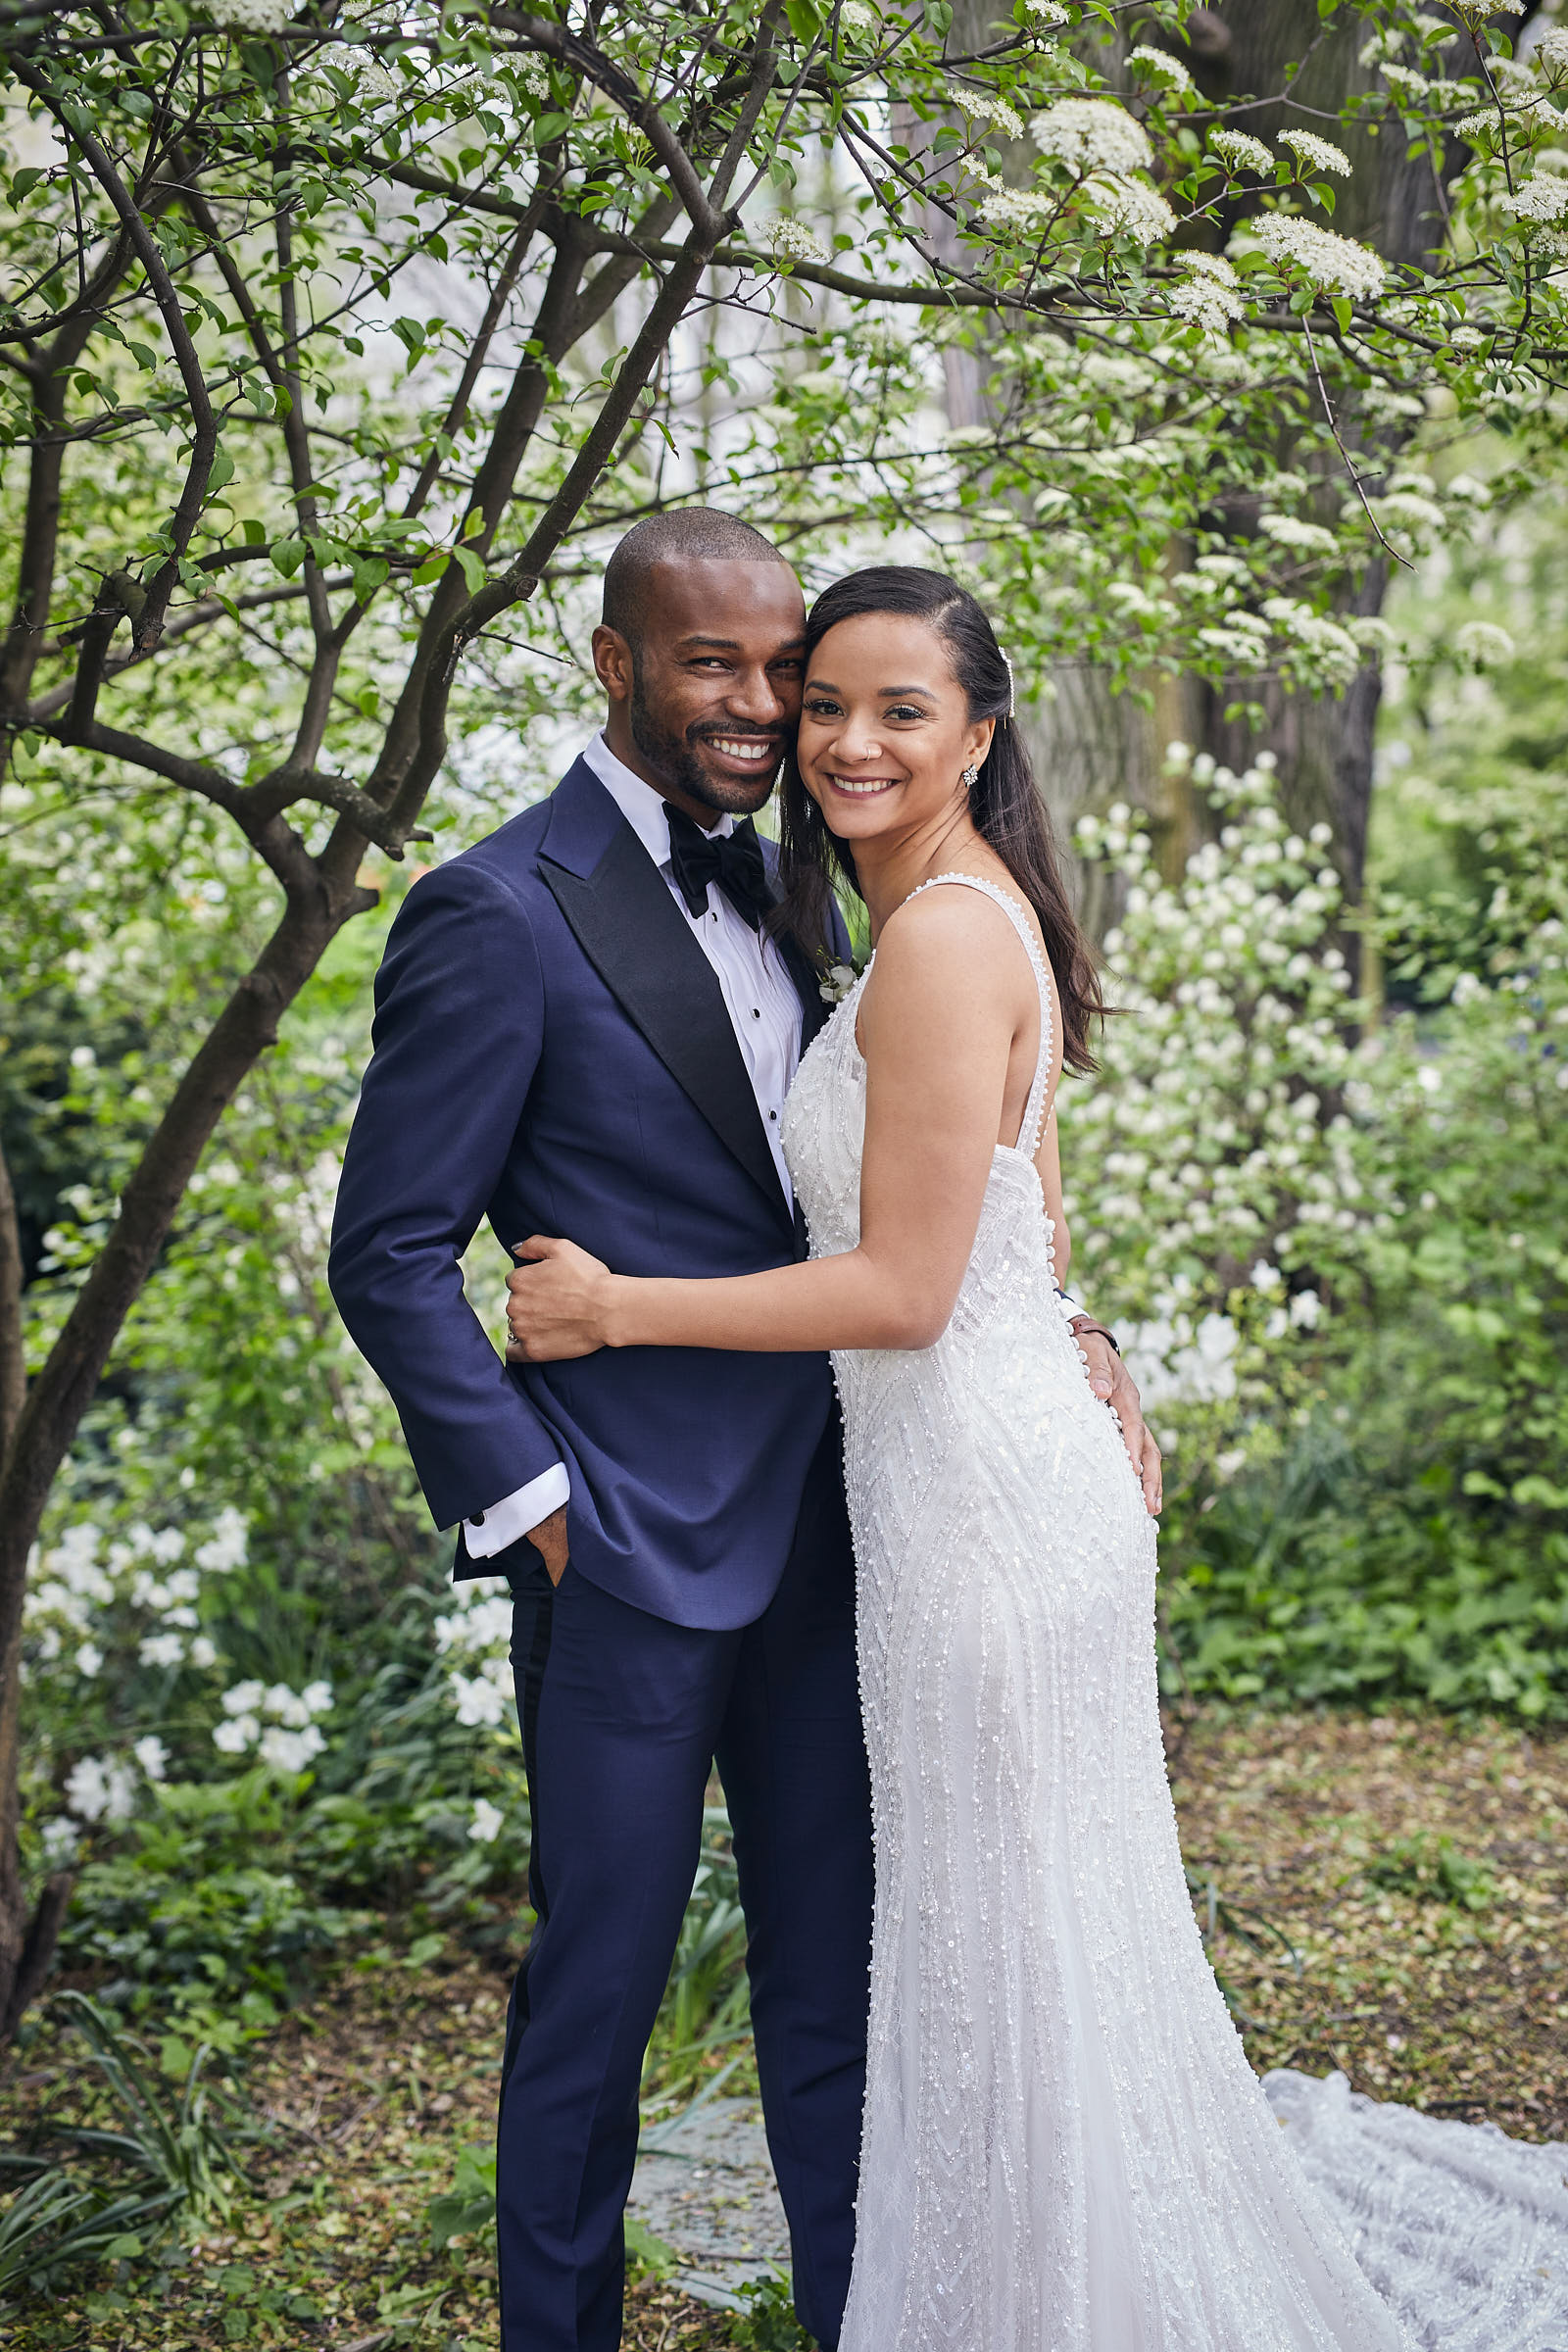 Tamron Hall Officiates The First-Ever 'Tamron Hall' Virtual Wedding  For A Harlem, New York Couple On Today's 'Tamron Hall'